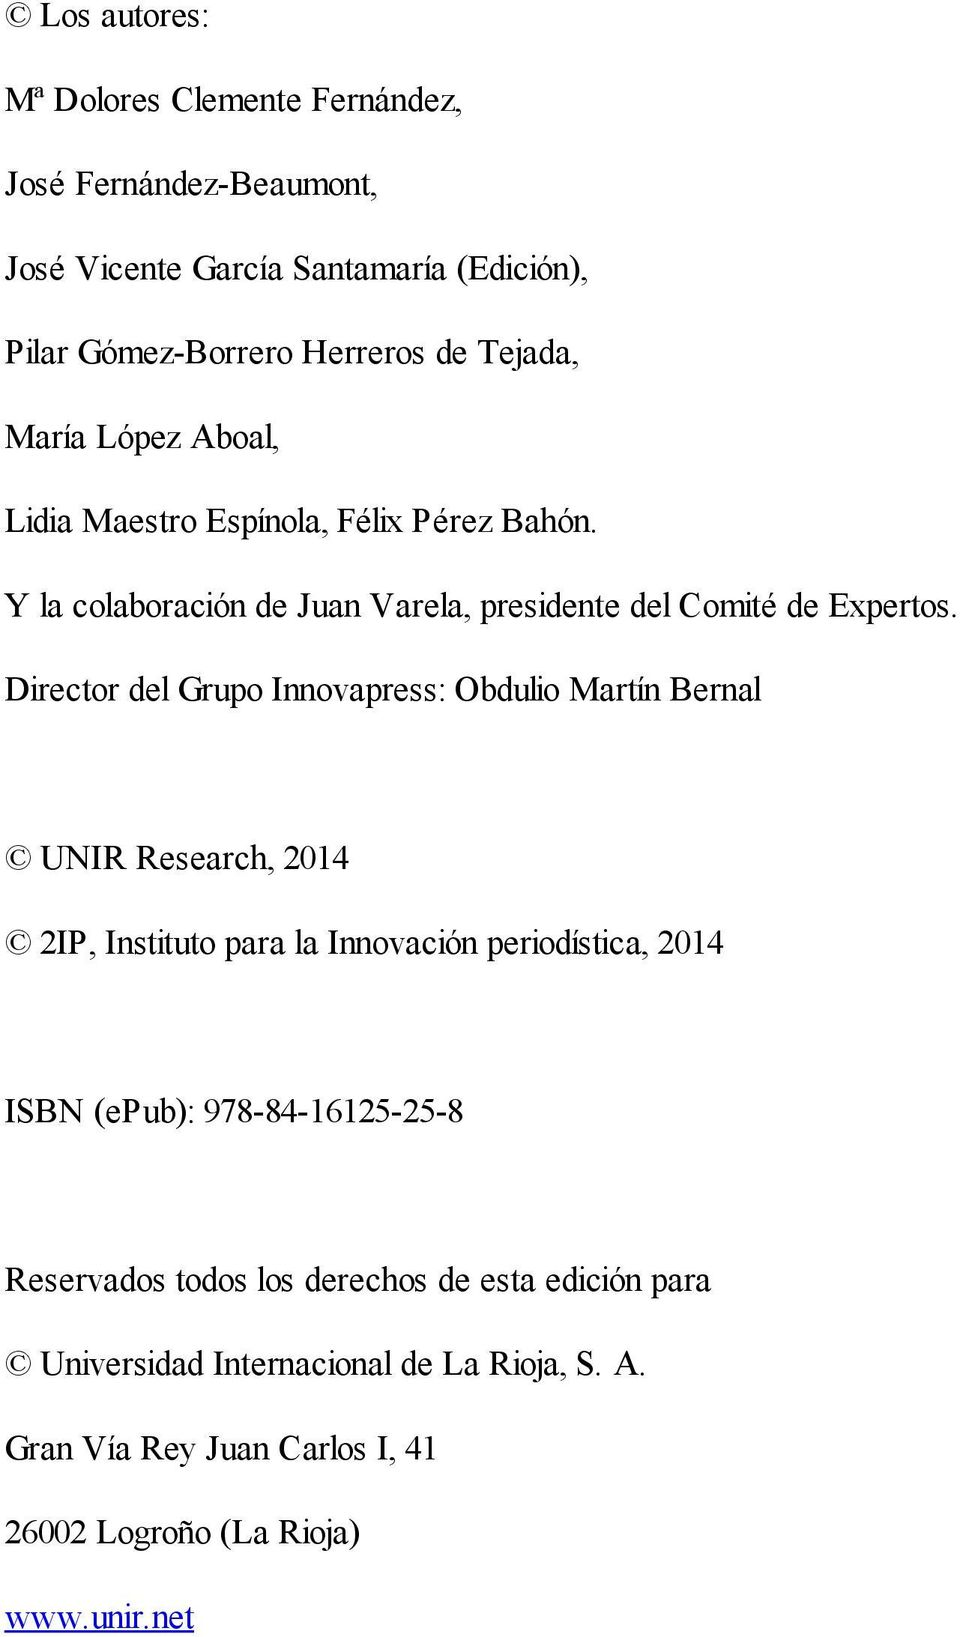 Director del Grupo Innovapress: Obdulio Martín Bernal UNIR Research, 2014 2IP, Instituto para la Innovación periodística, 2014 ISBN (epub):